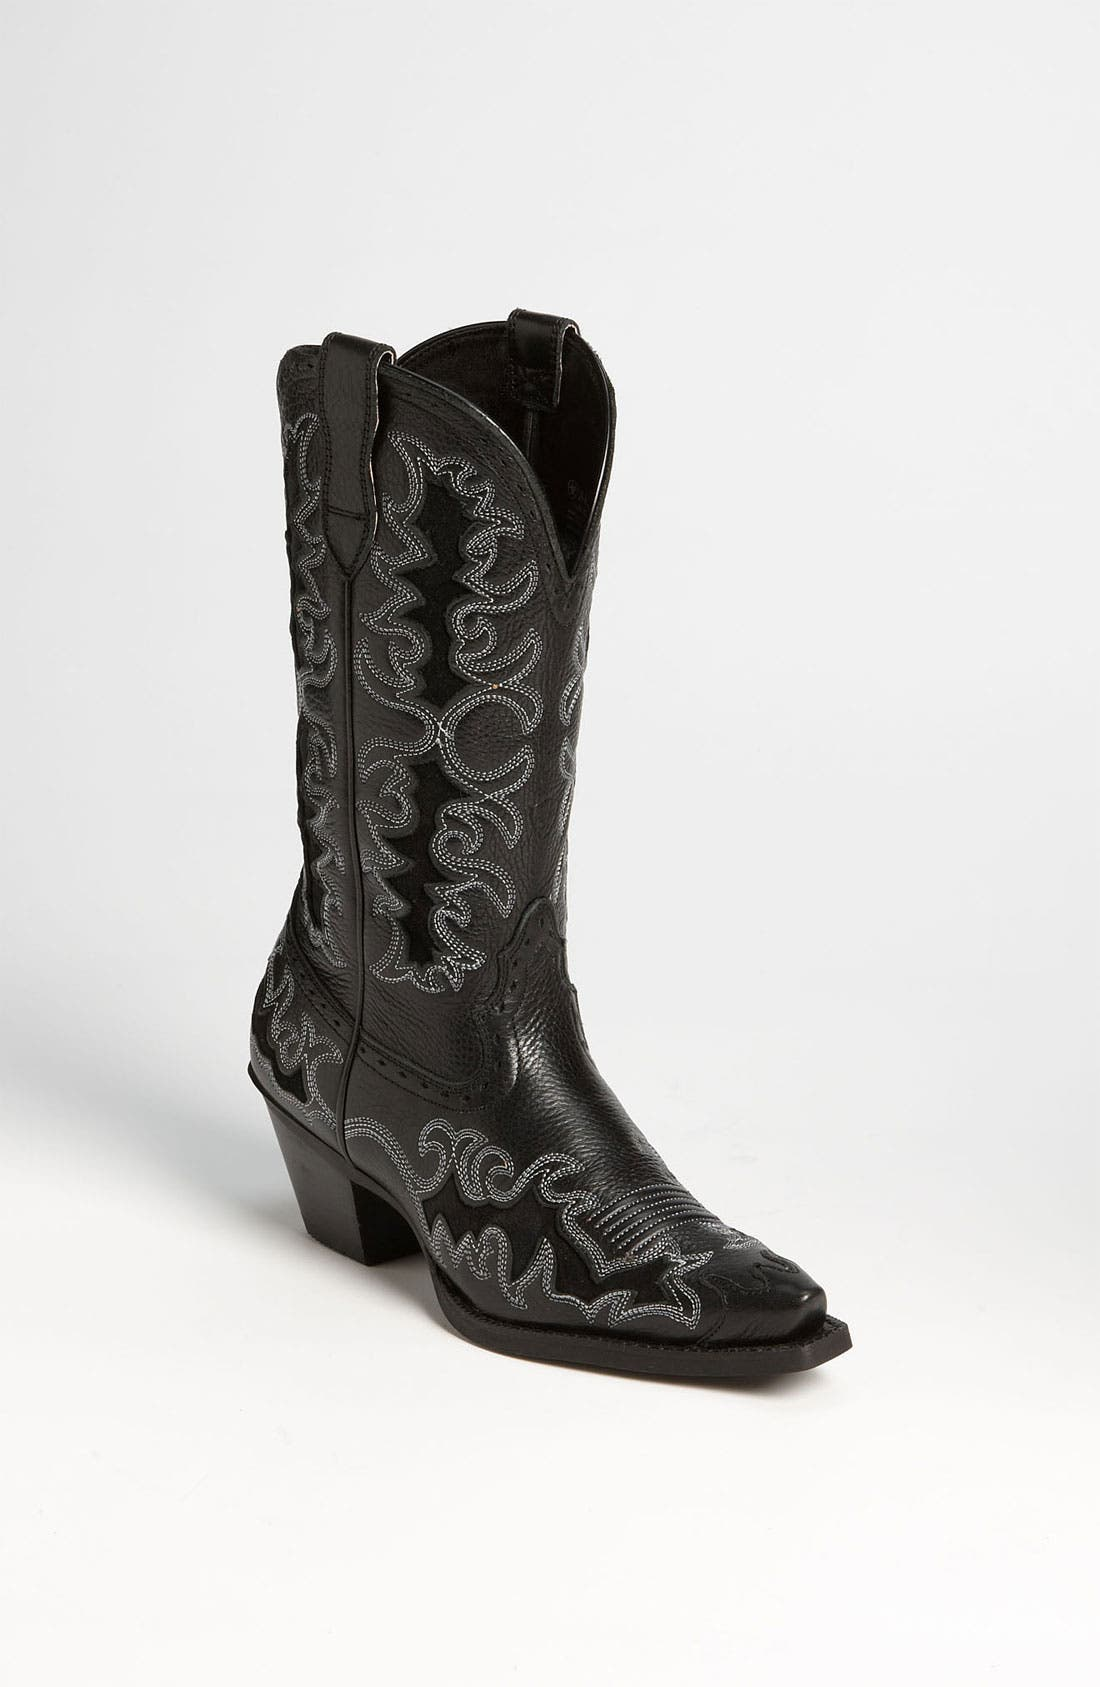 Alternate Image 1 Selected - Ariat 'Dandy' Snip Toe Boot